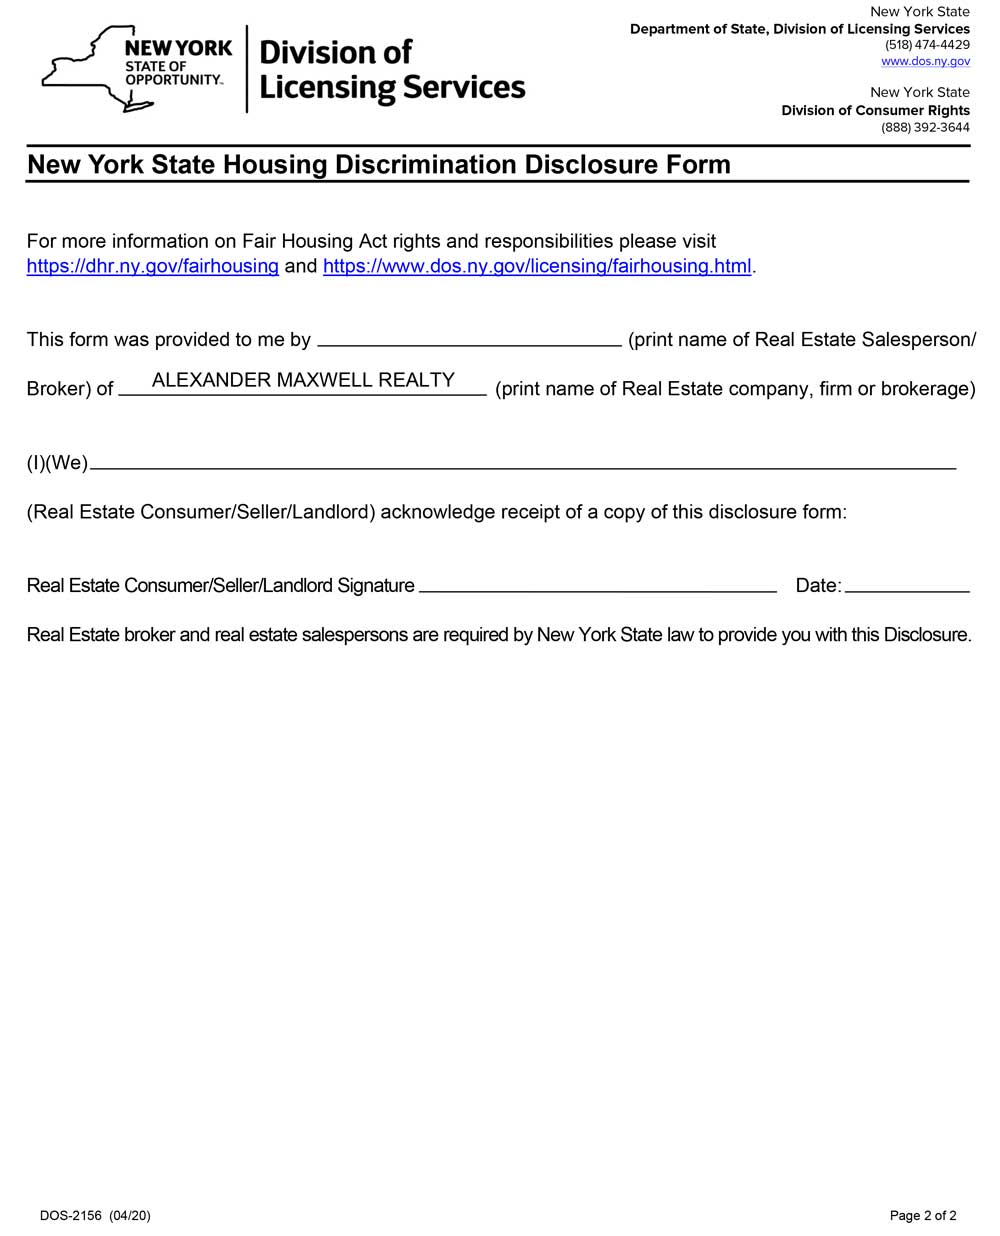 NYS Fair Housing Disclosure